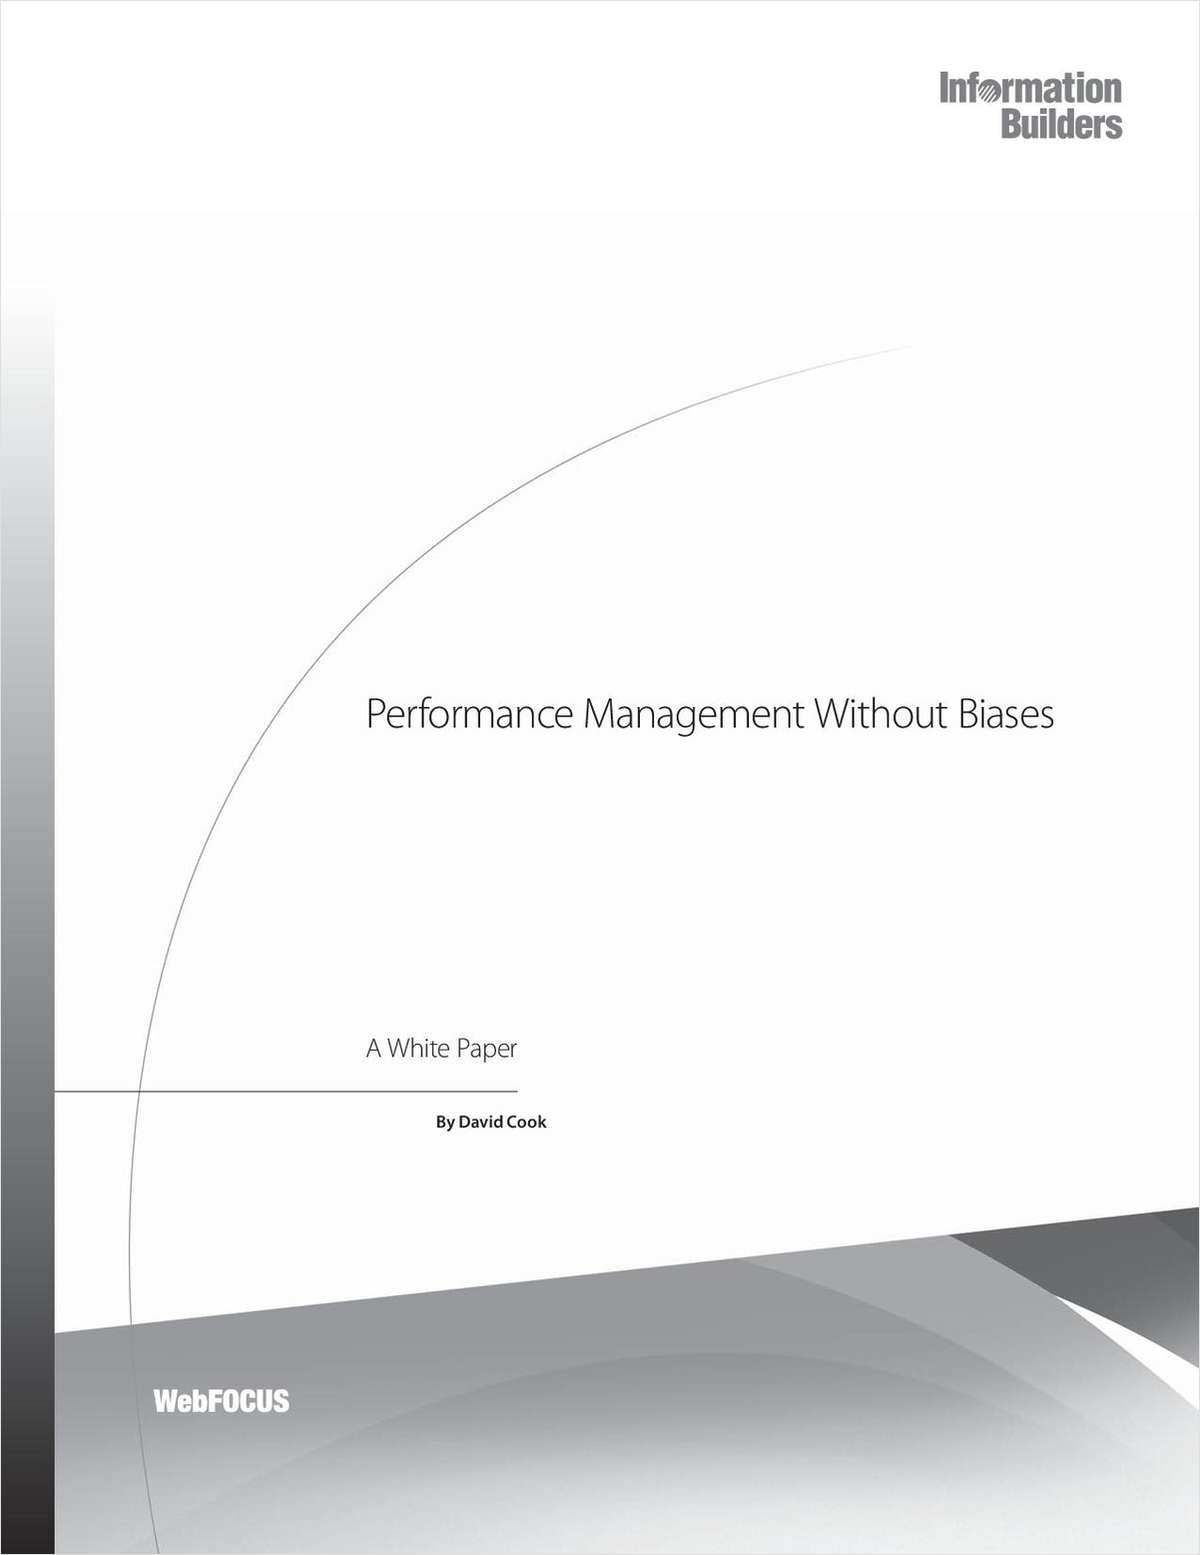 Performance Management Without Biases